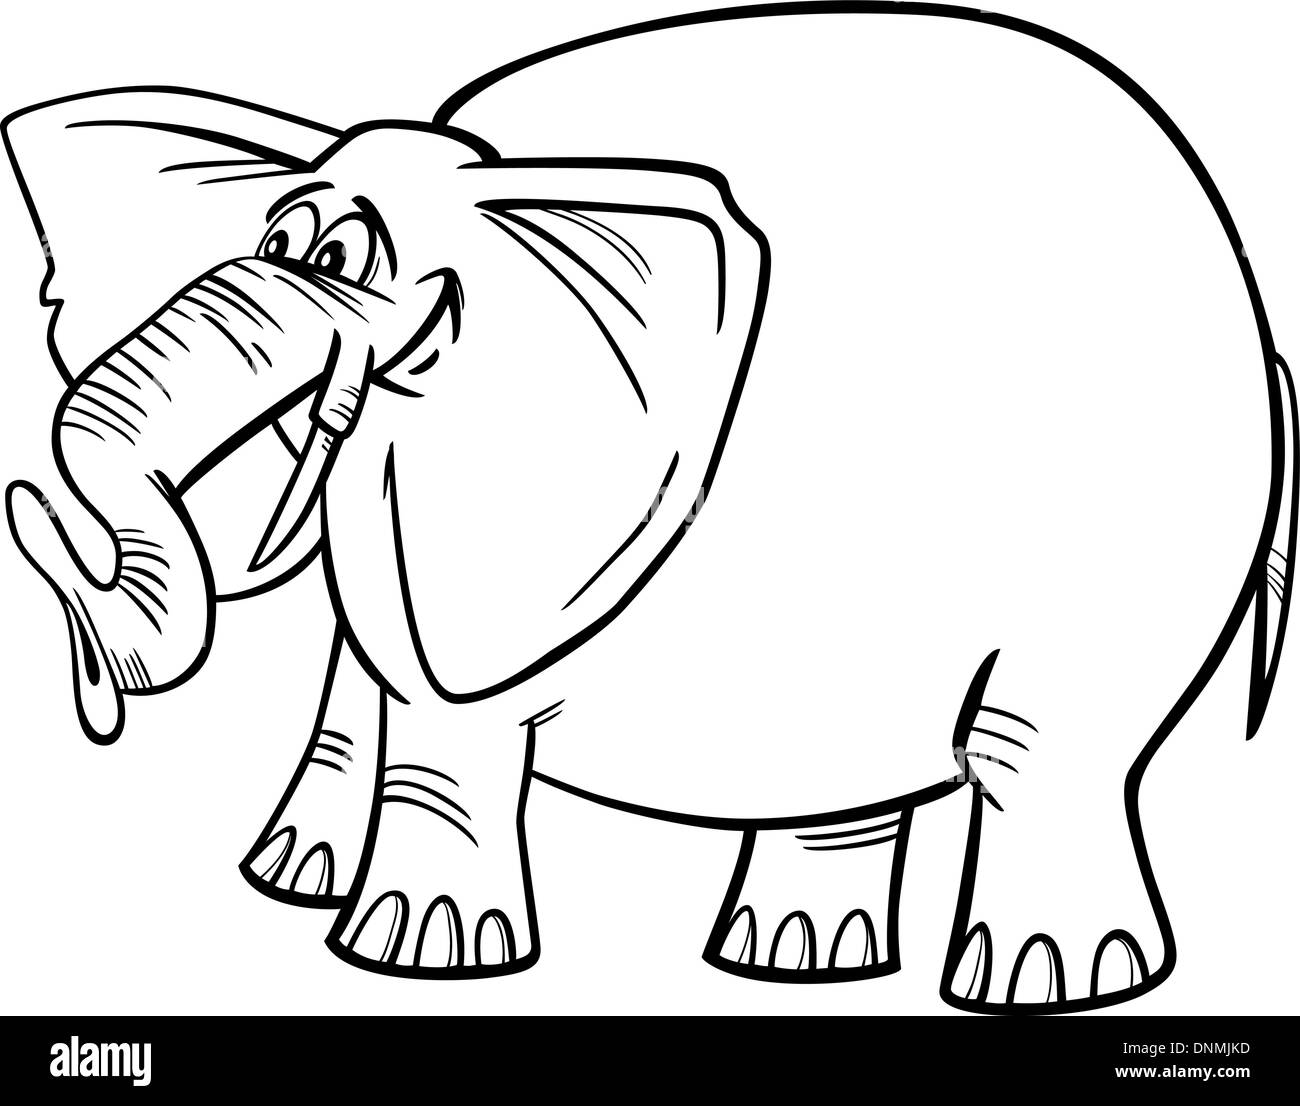 Cartoon Illustration Of Funny Gray African Elephant For Coloring Book